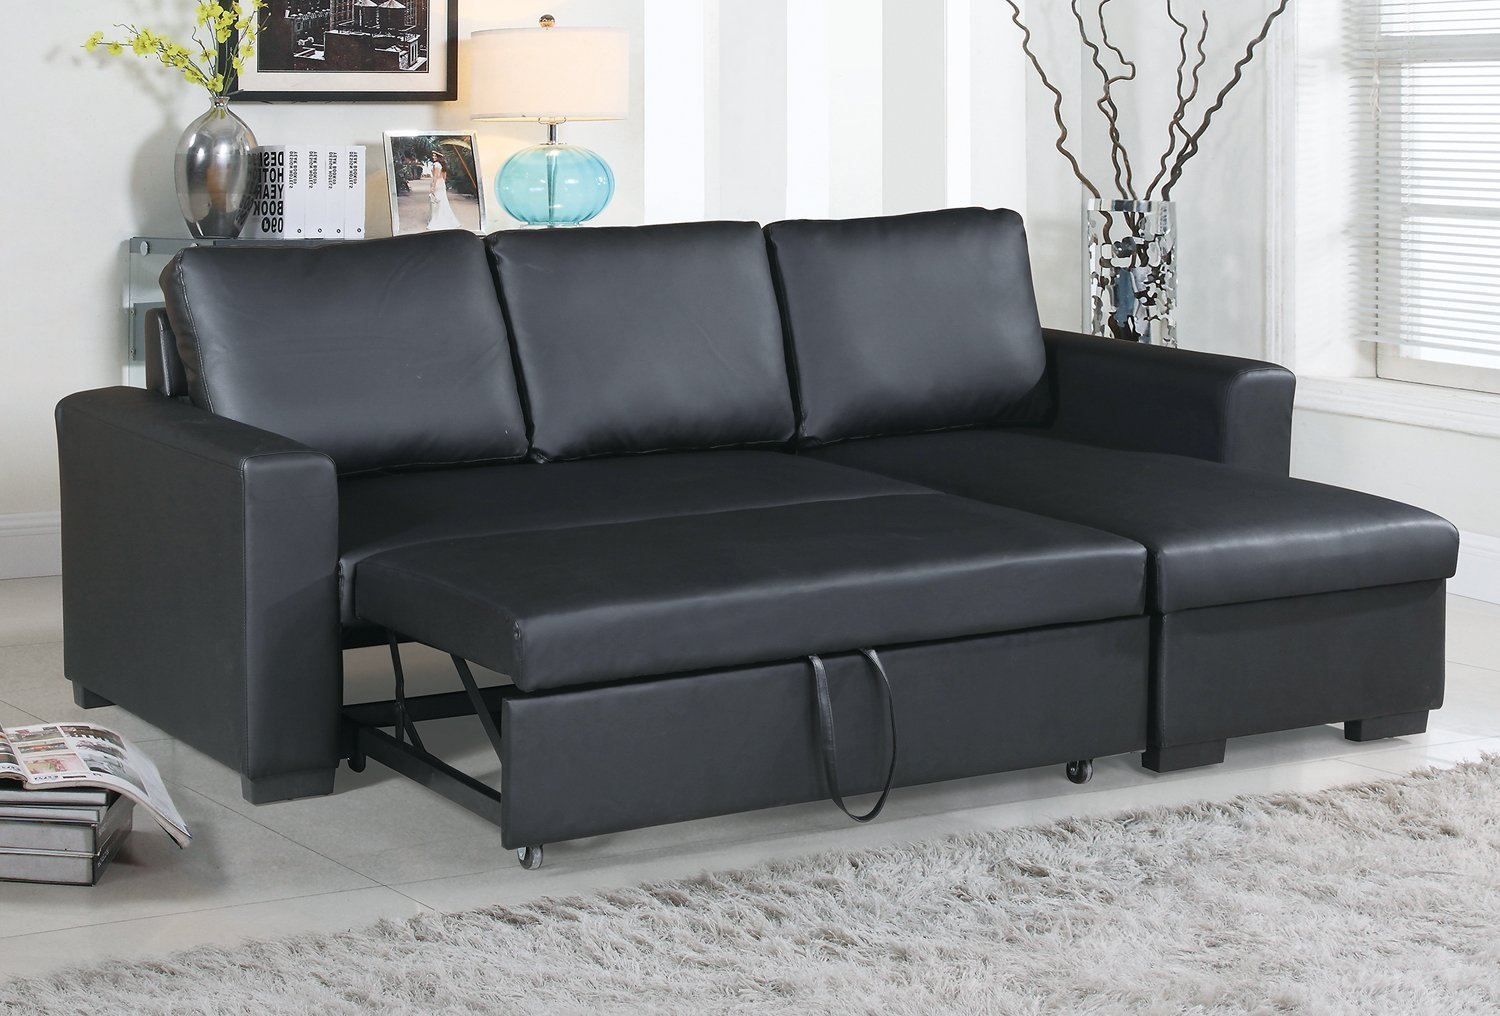 Modern Black Faux Leather Convertible Sectional Sofa Set with Pull